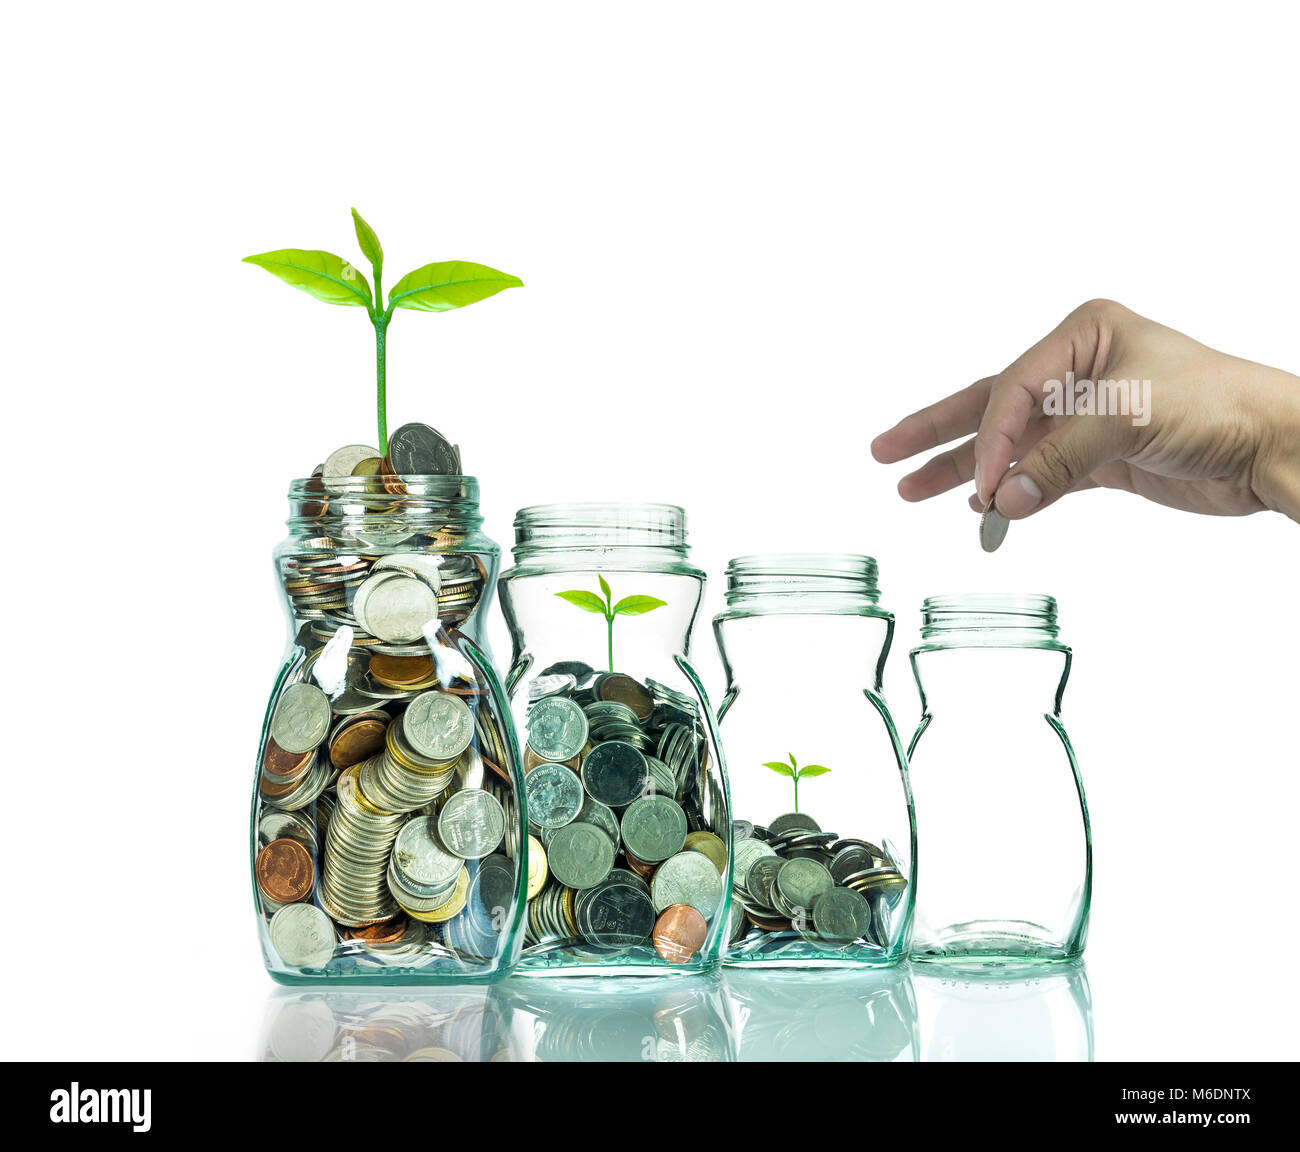 Hand putting mix coins and seed in clear bottle on white background,Business investment growth concept - Stock Image